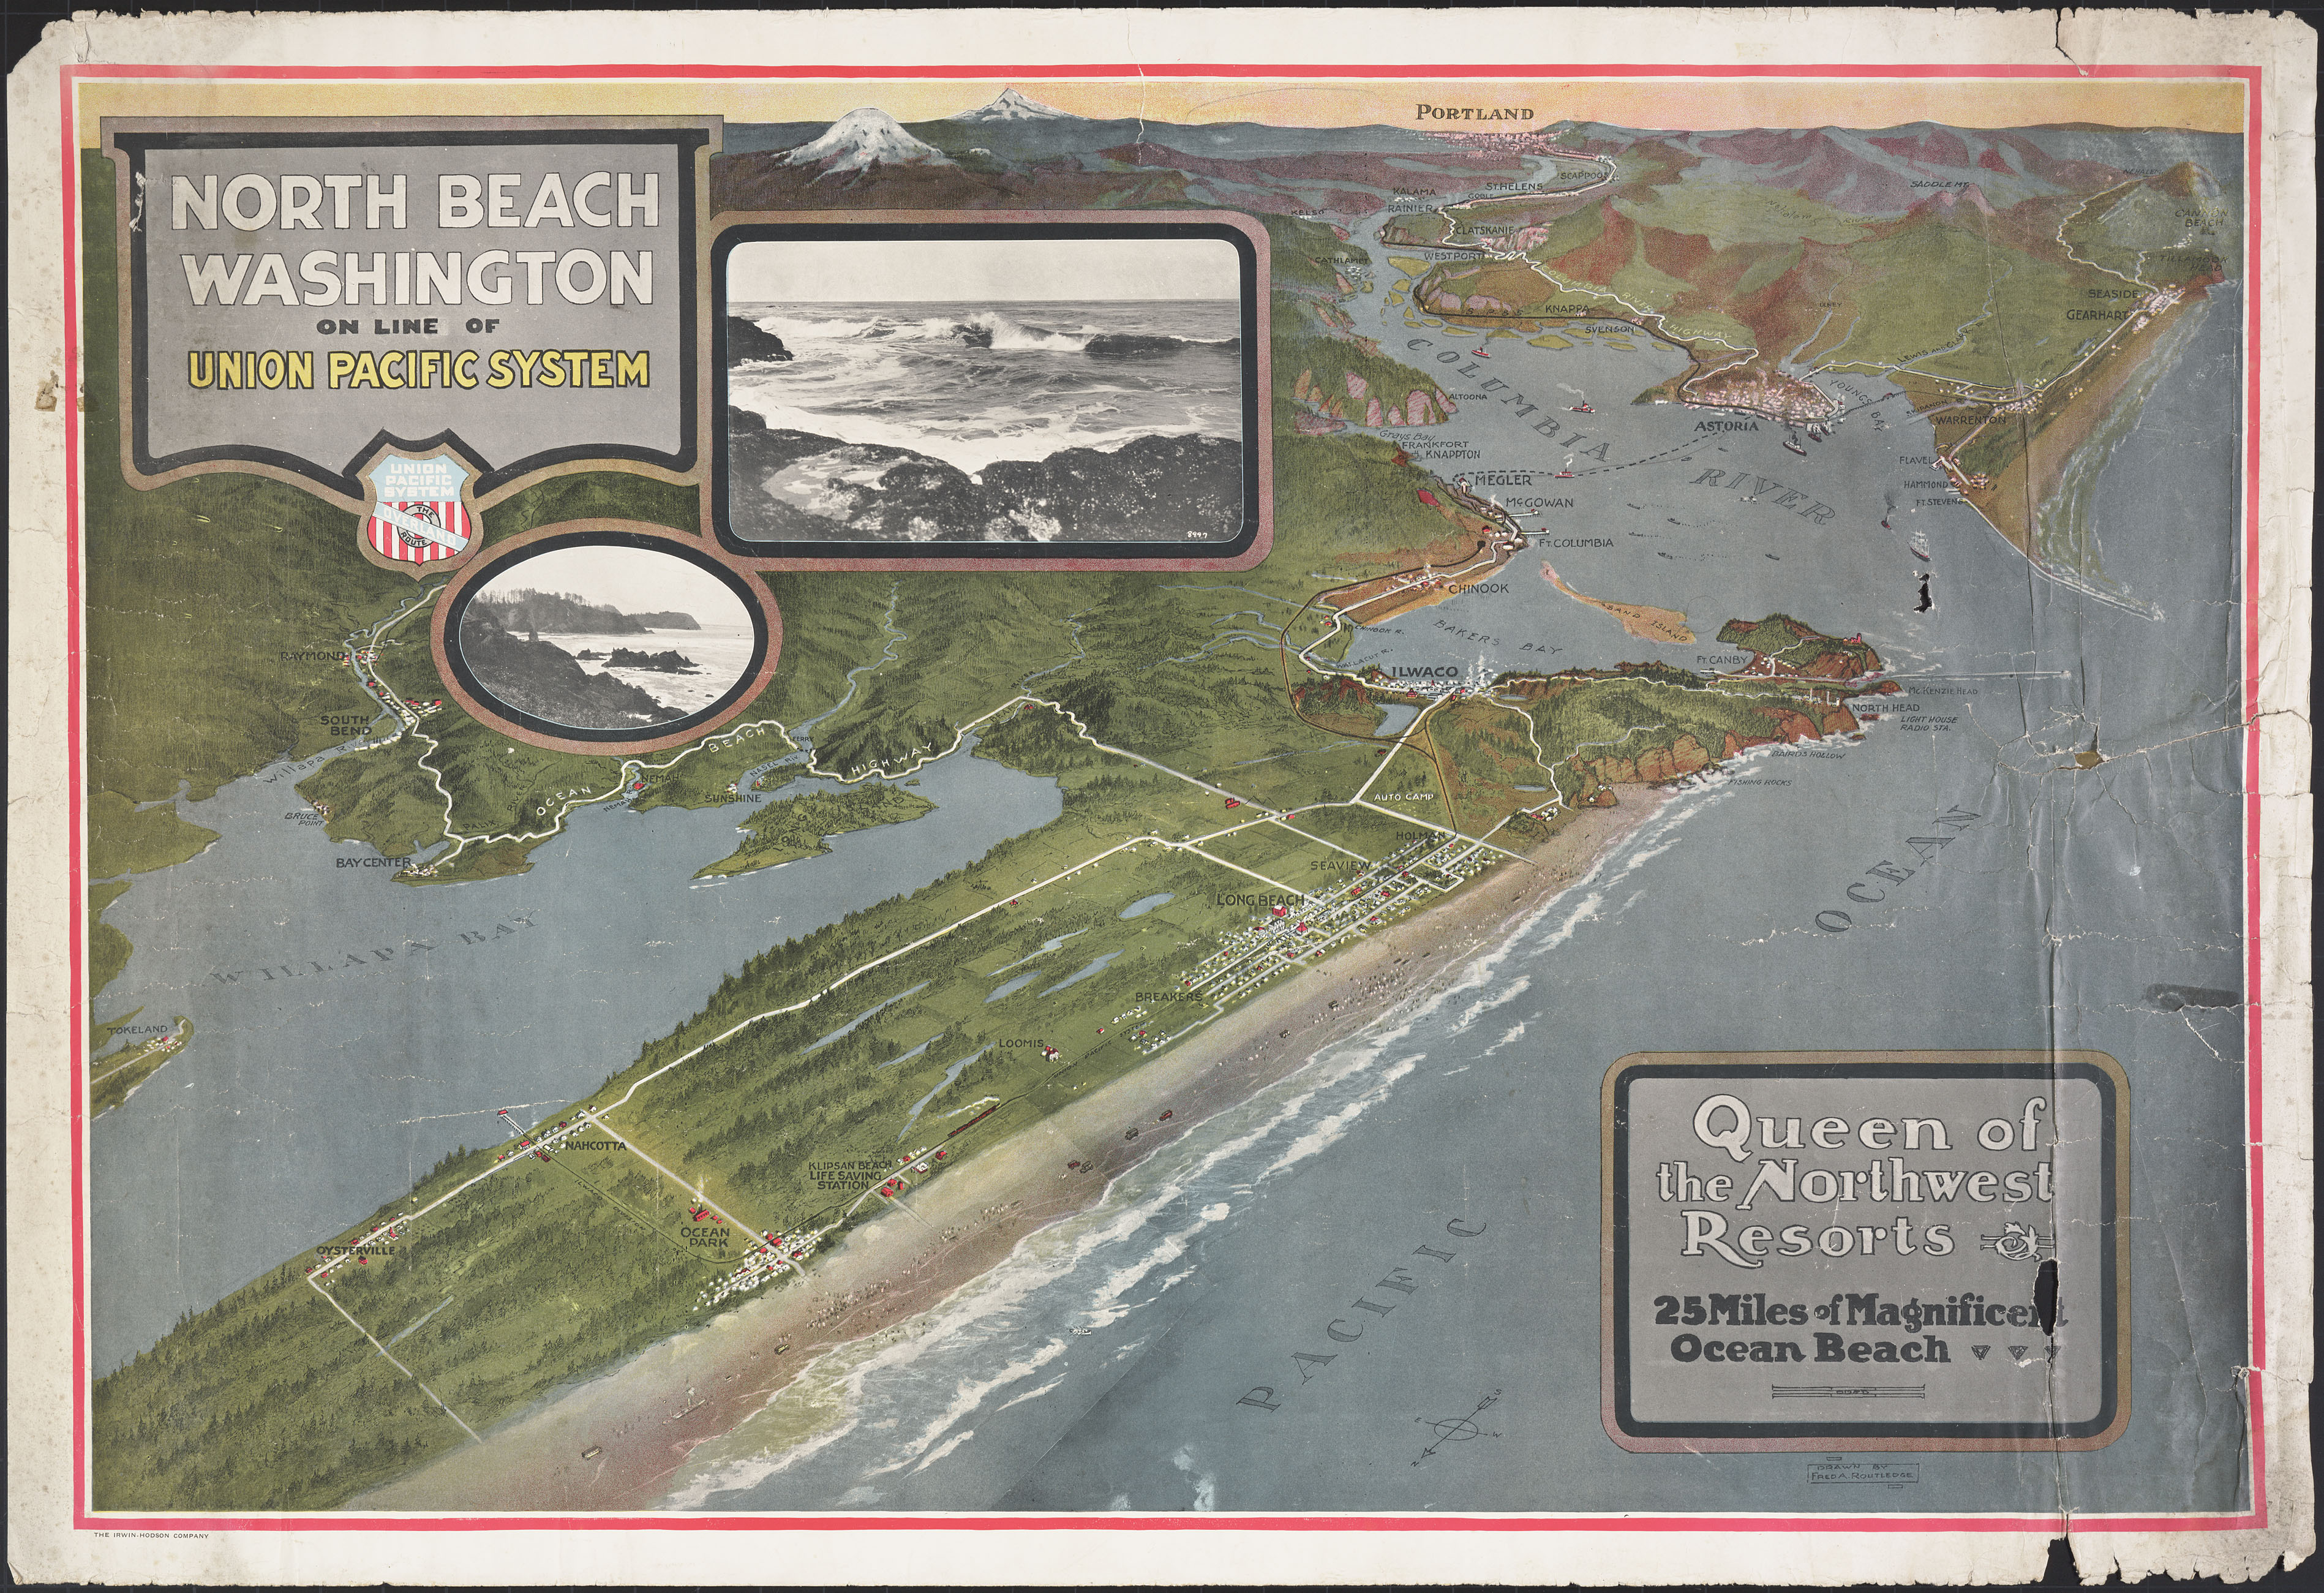 North Beach Washington on the line of the Union Pacific System:  Queen of the Northwest Resorts